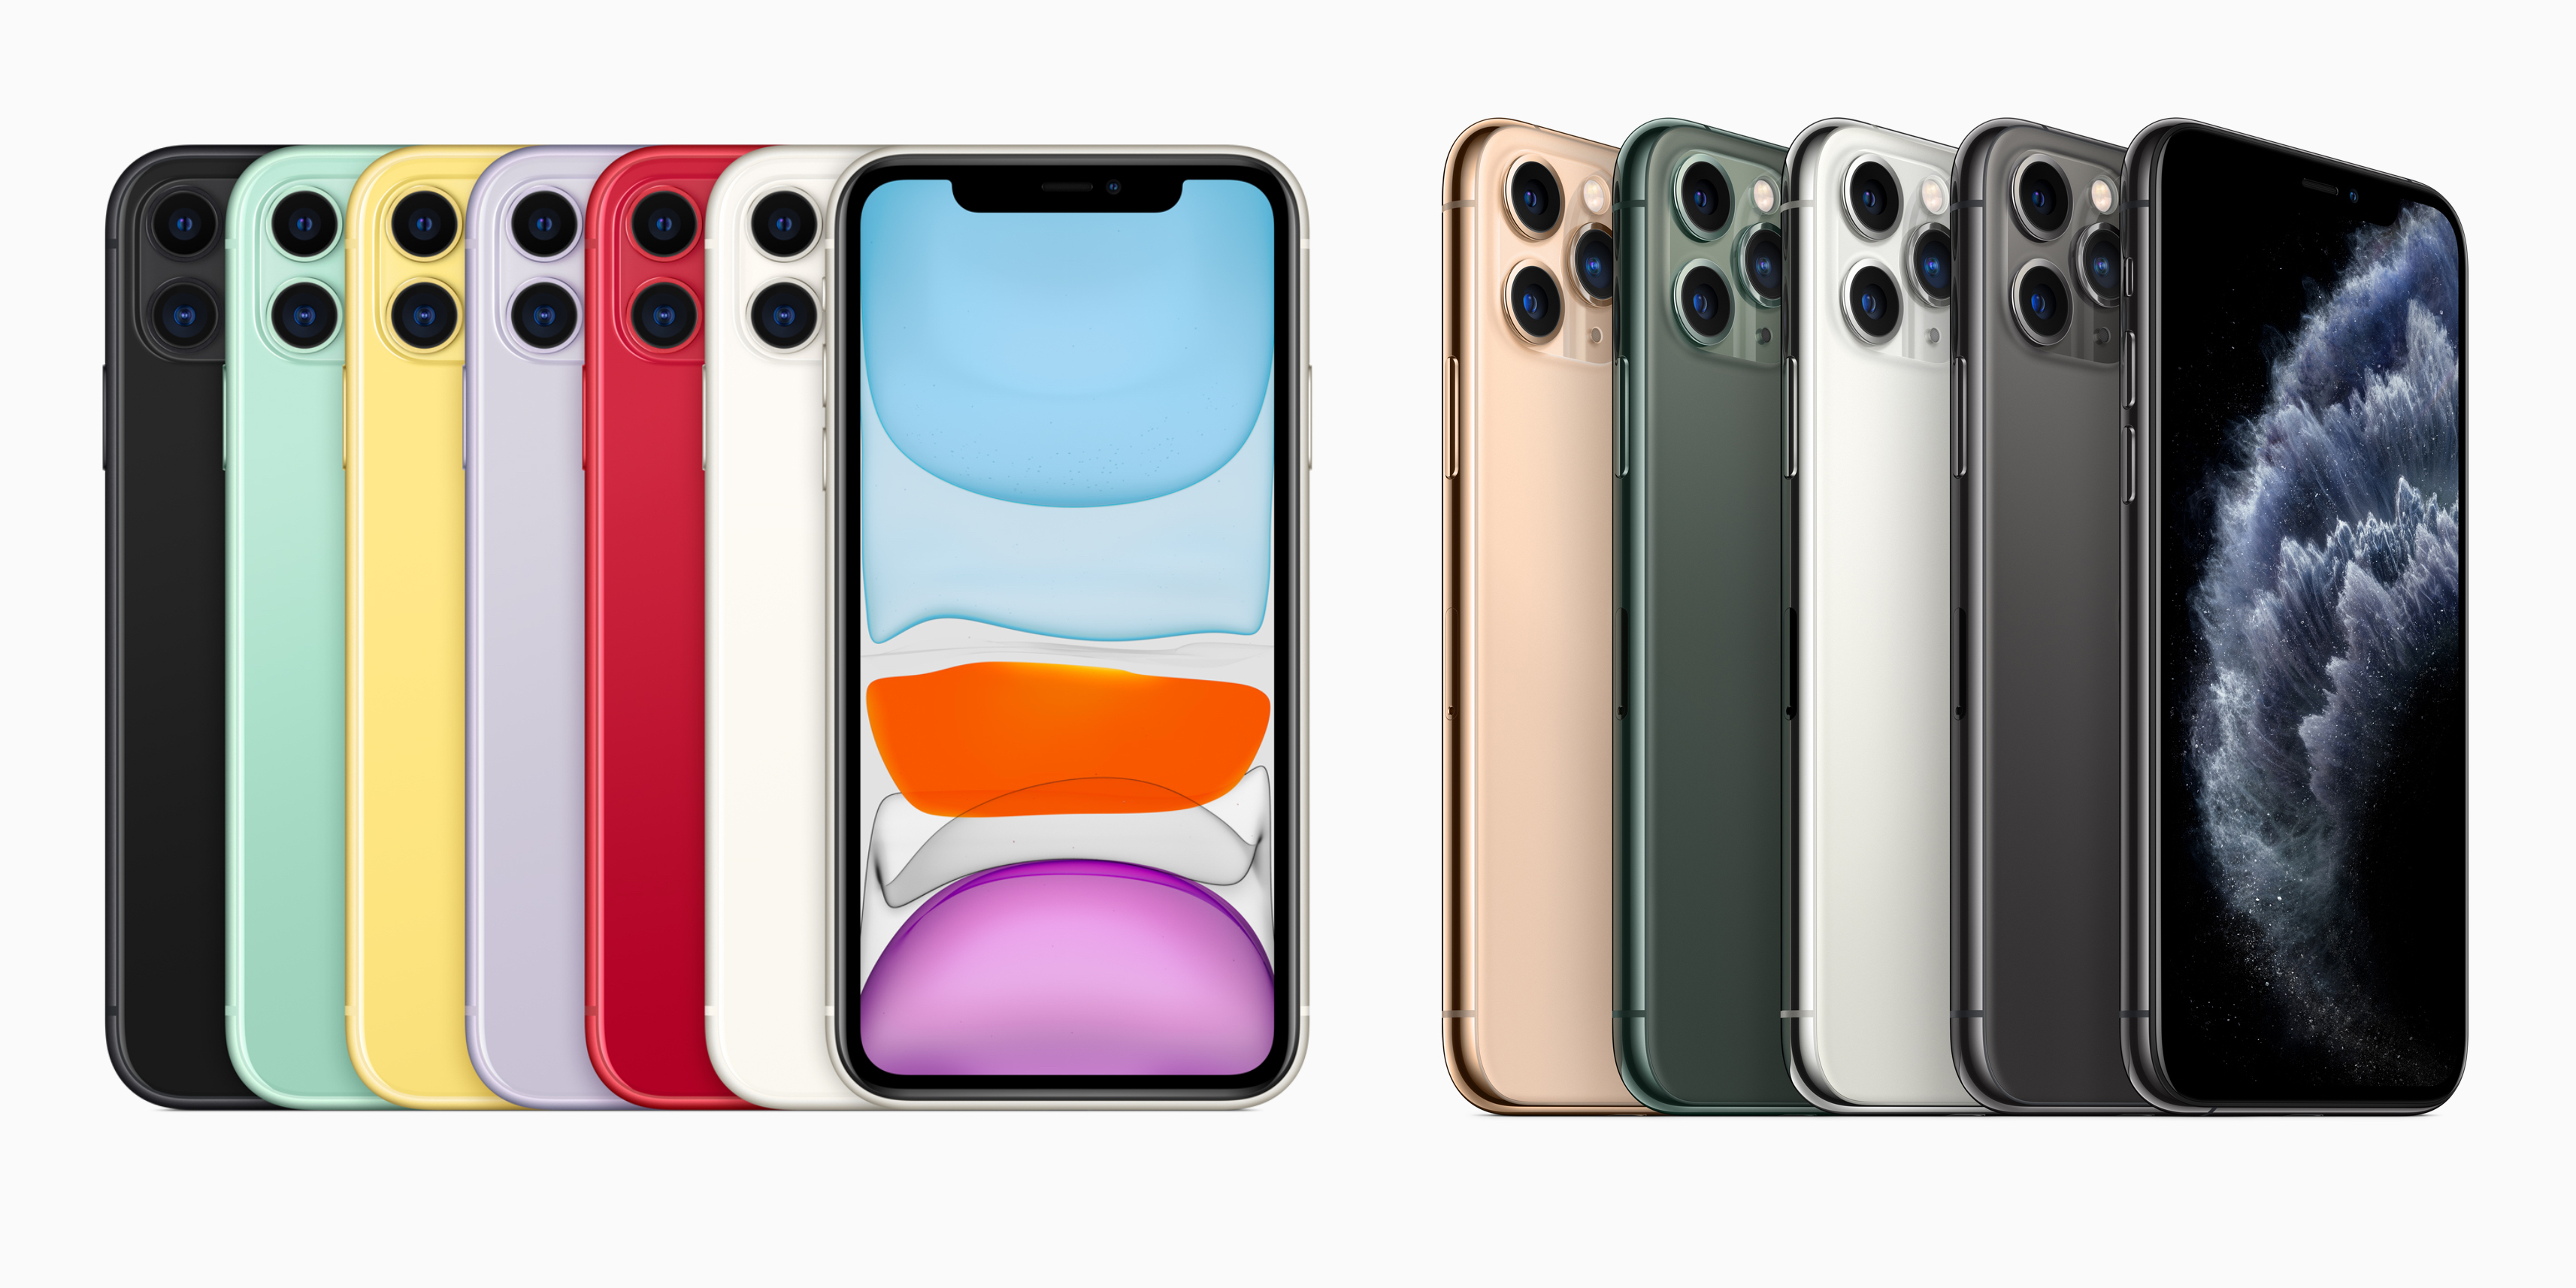 iPhone 11 and iPhone 11 Pro now available to order, starting